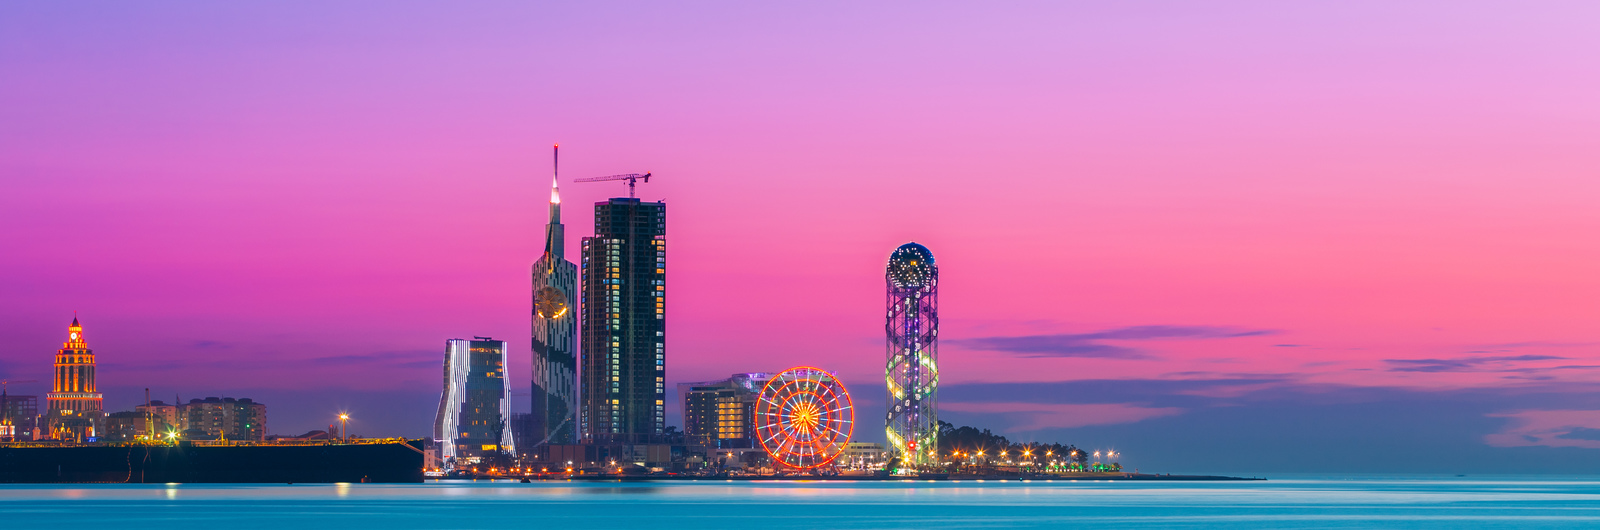 batumi city header